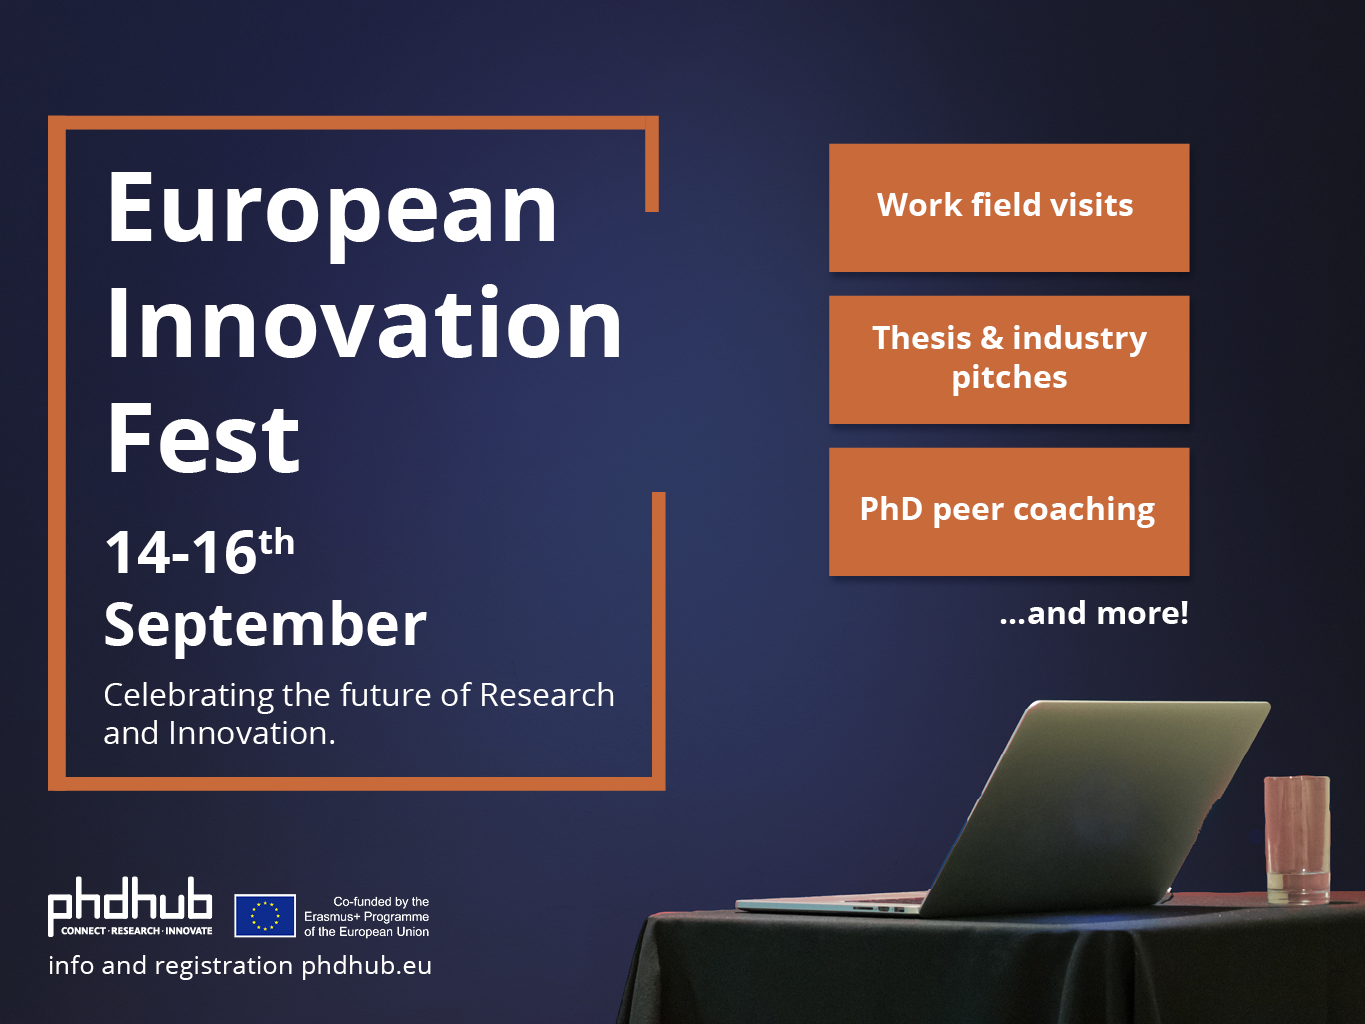 European Innovation Fest, 14-16 September: Celebrate the future of research and innovation